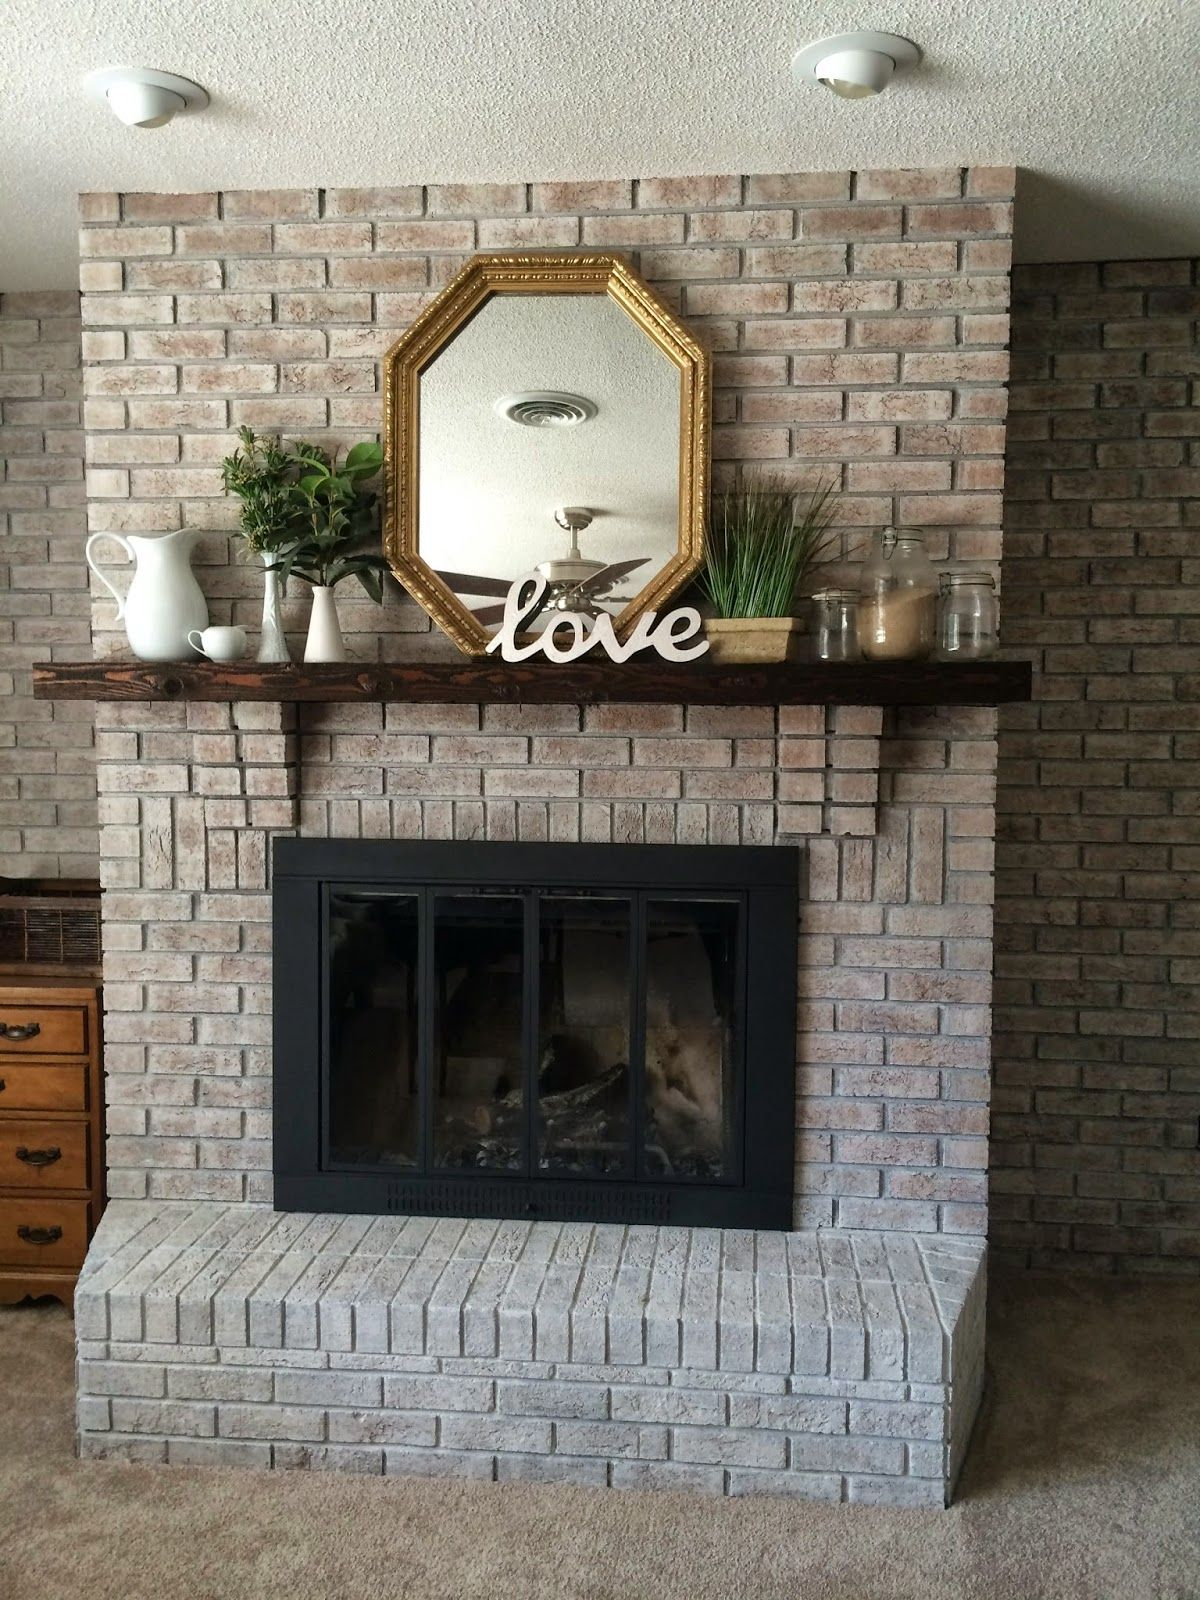 Best Paint for Brick Fireplace New White Washing Brick with Gray Beige Walking with Dancers